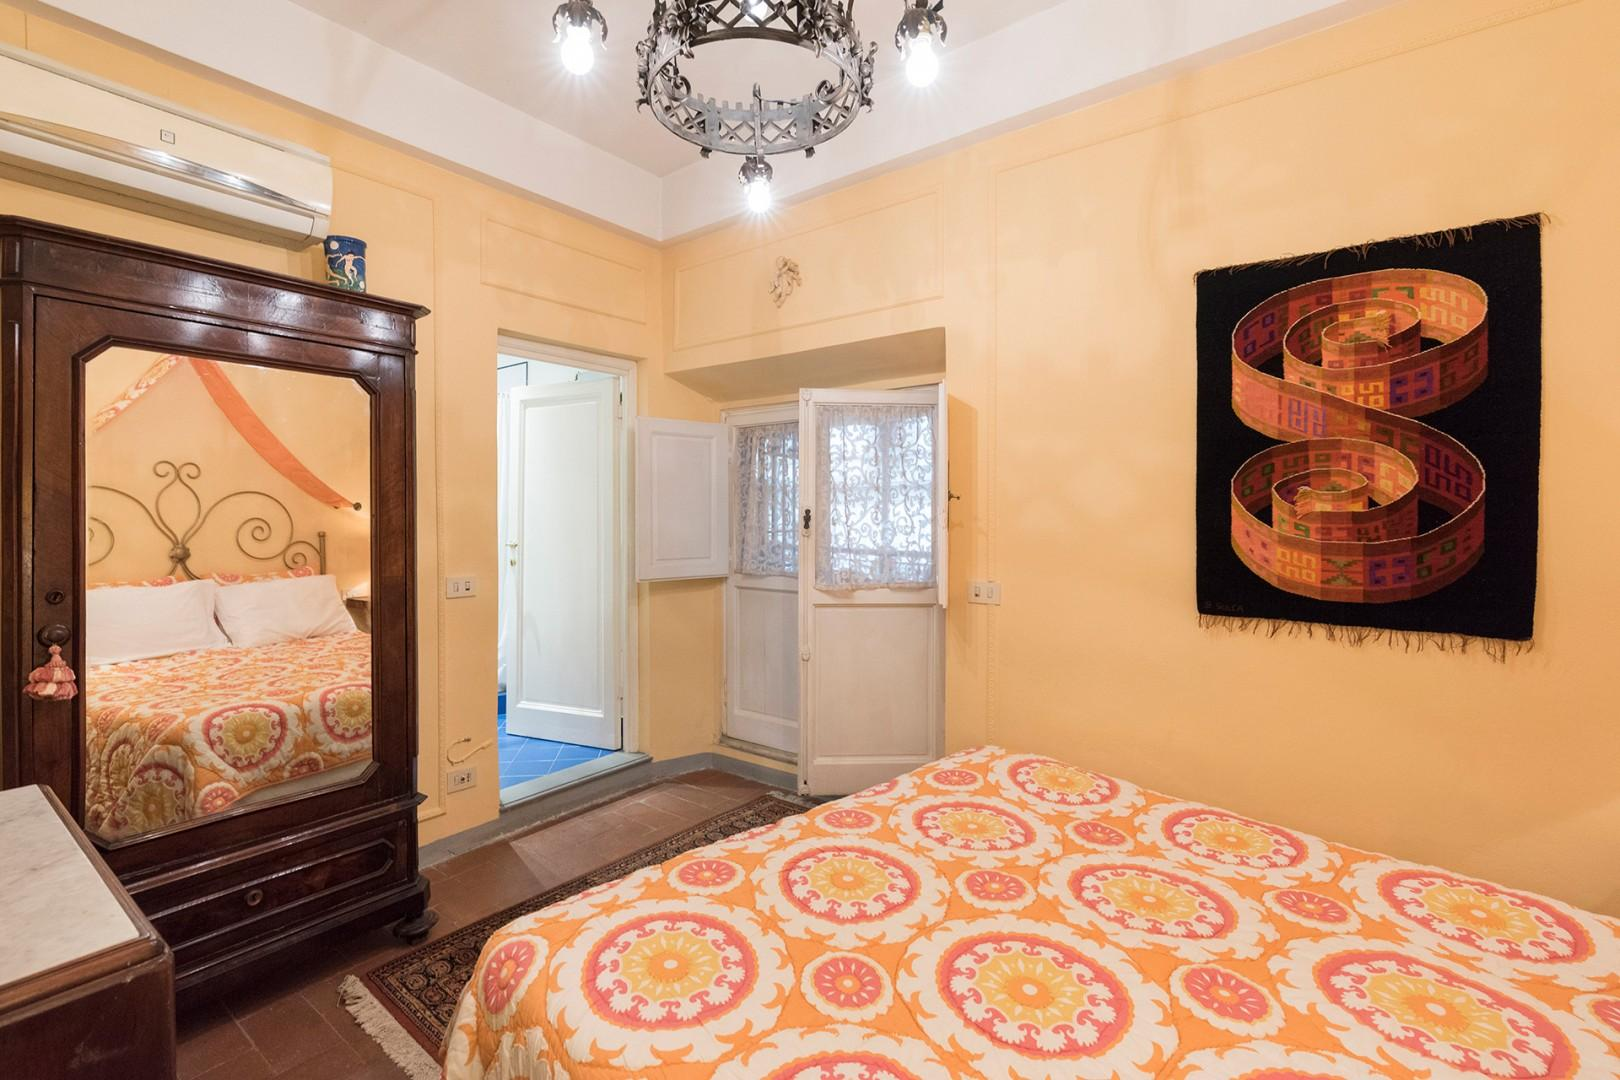 Sunny colors in the bedroom 2 with comfortable bed. The door opens to the terrace.